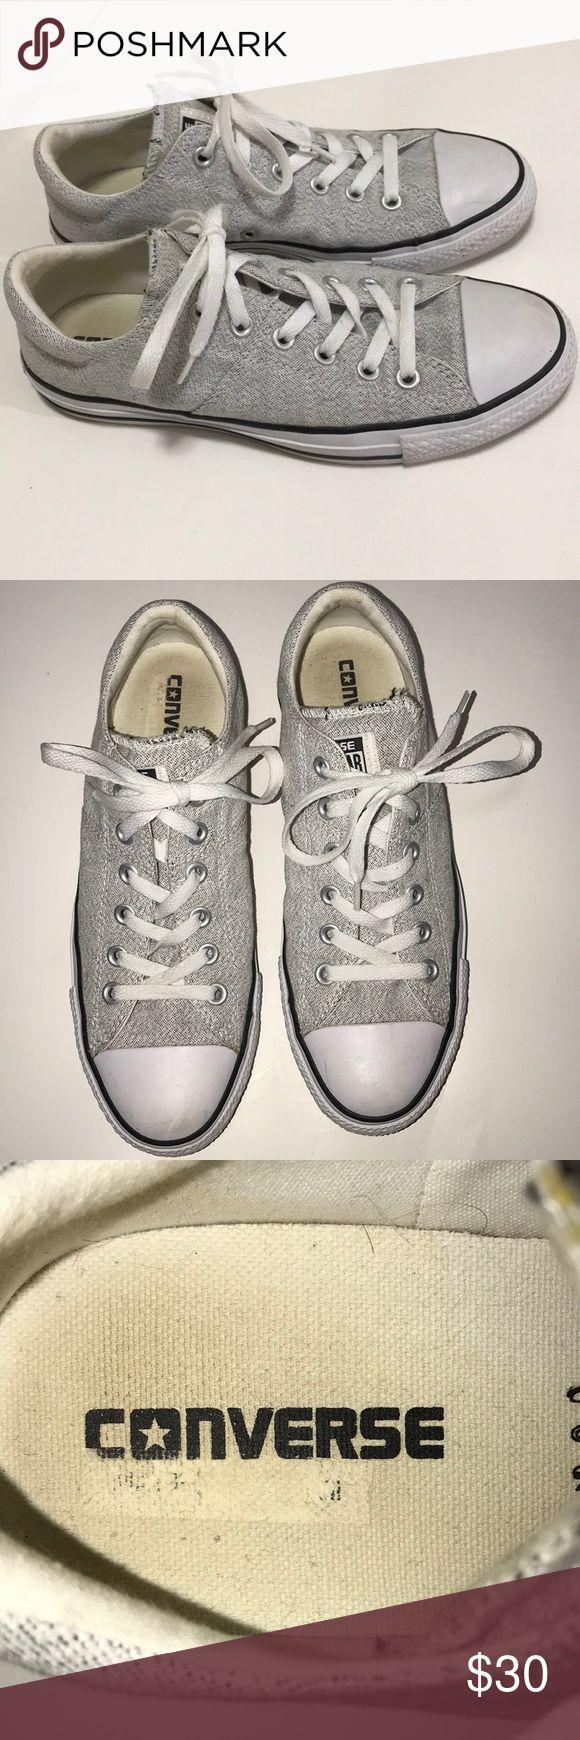 Converse sneakers women's 9 Converse tennis shoes women's 9 EUC Smoke free and pet free home and packaged with care! Converse Shoes Sneakers